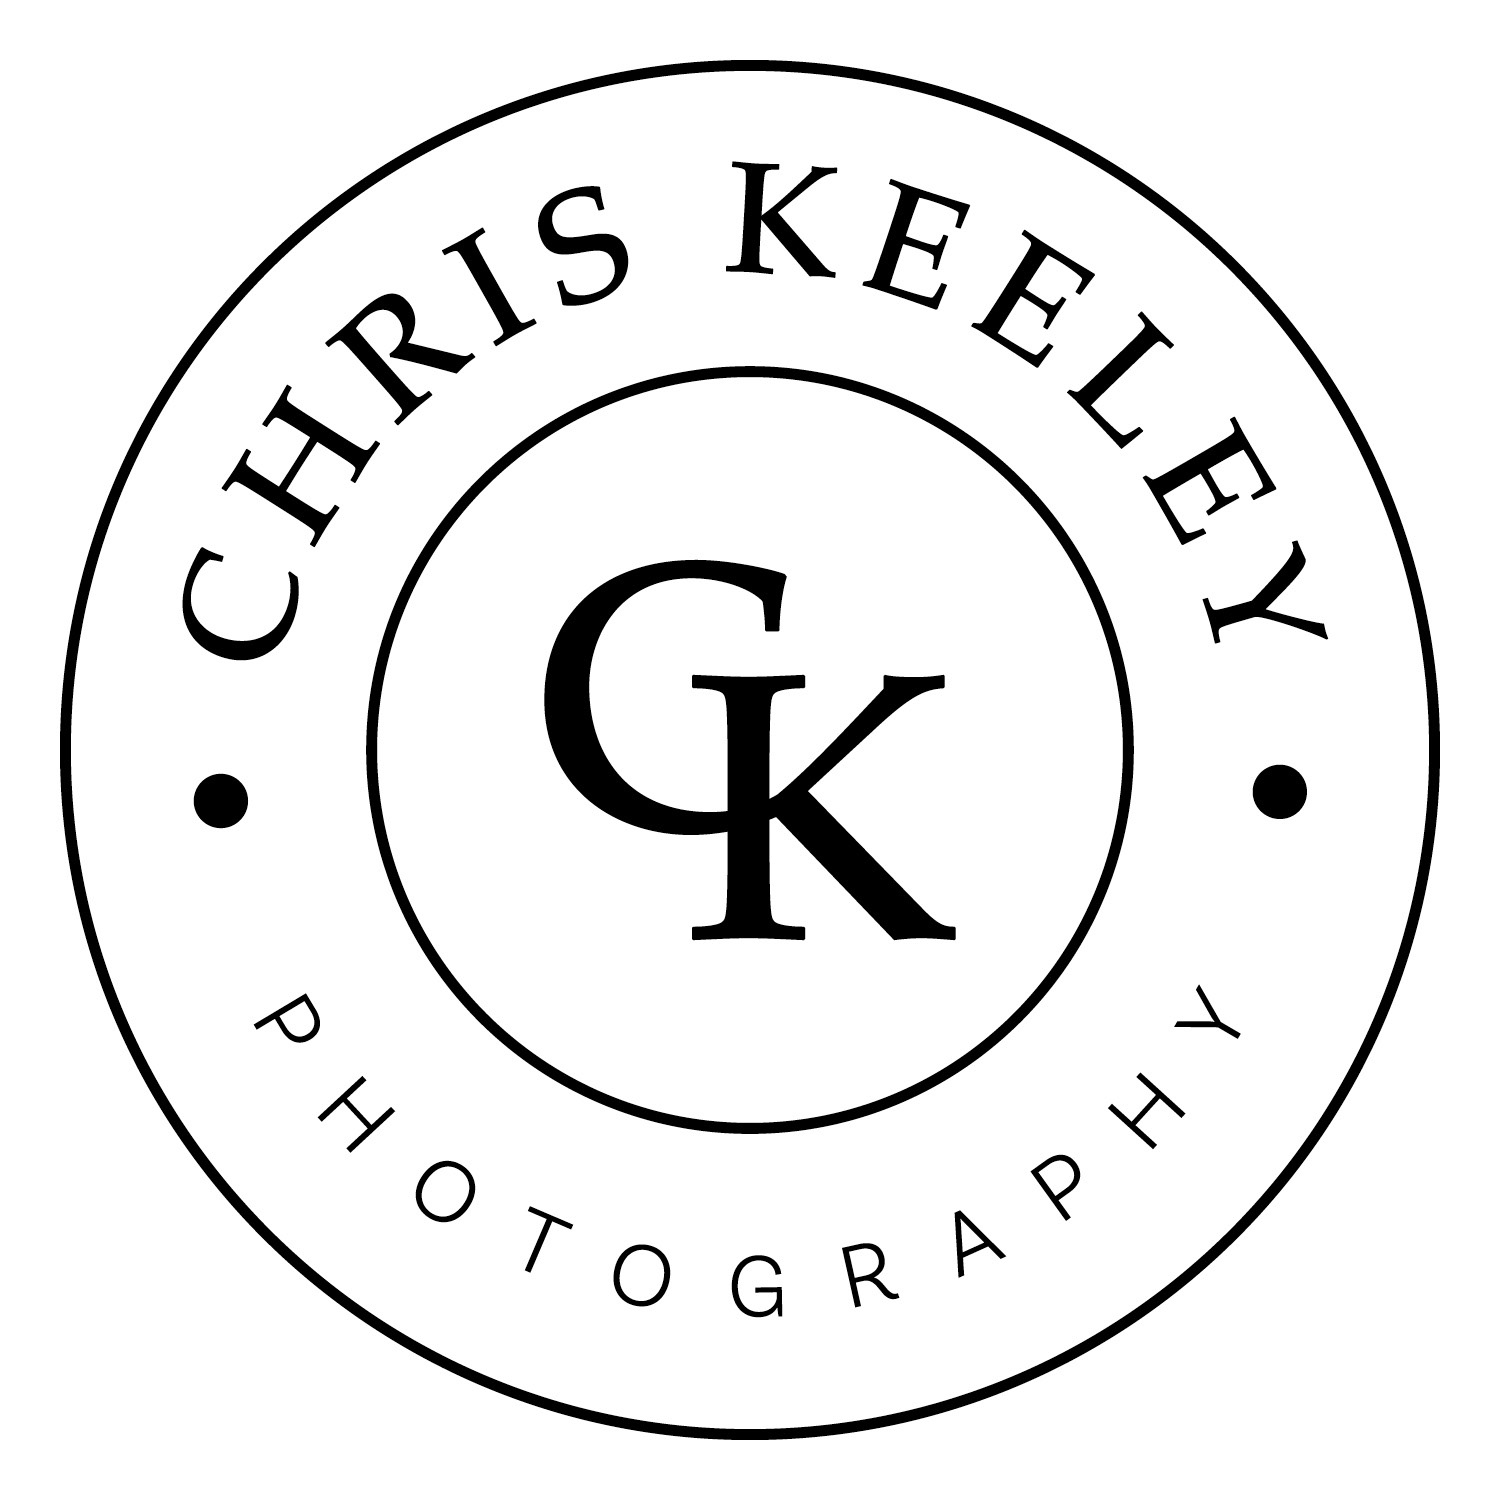 The Seal of Chris Keeley Photography